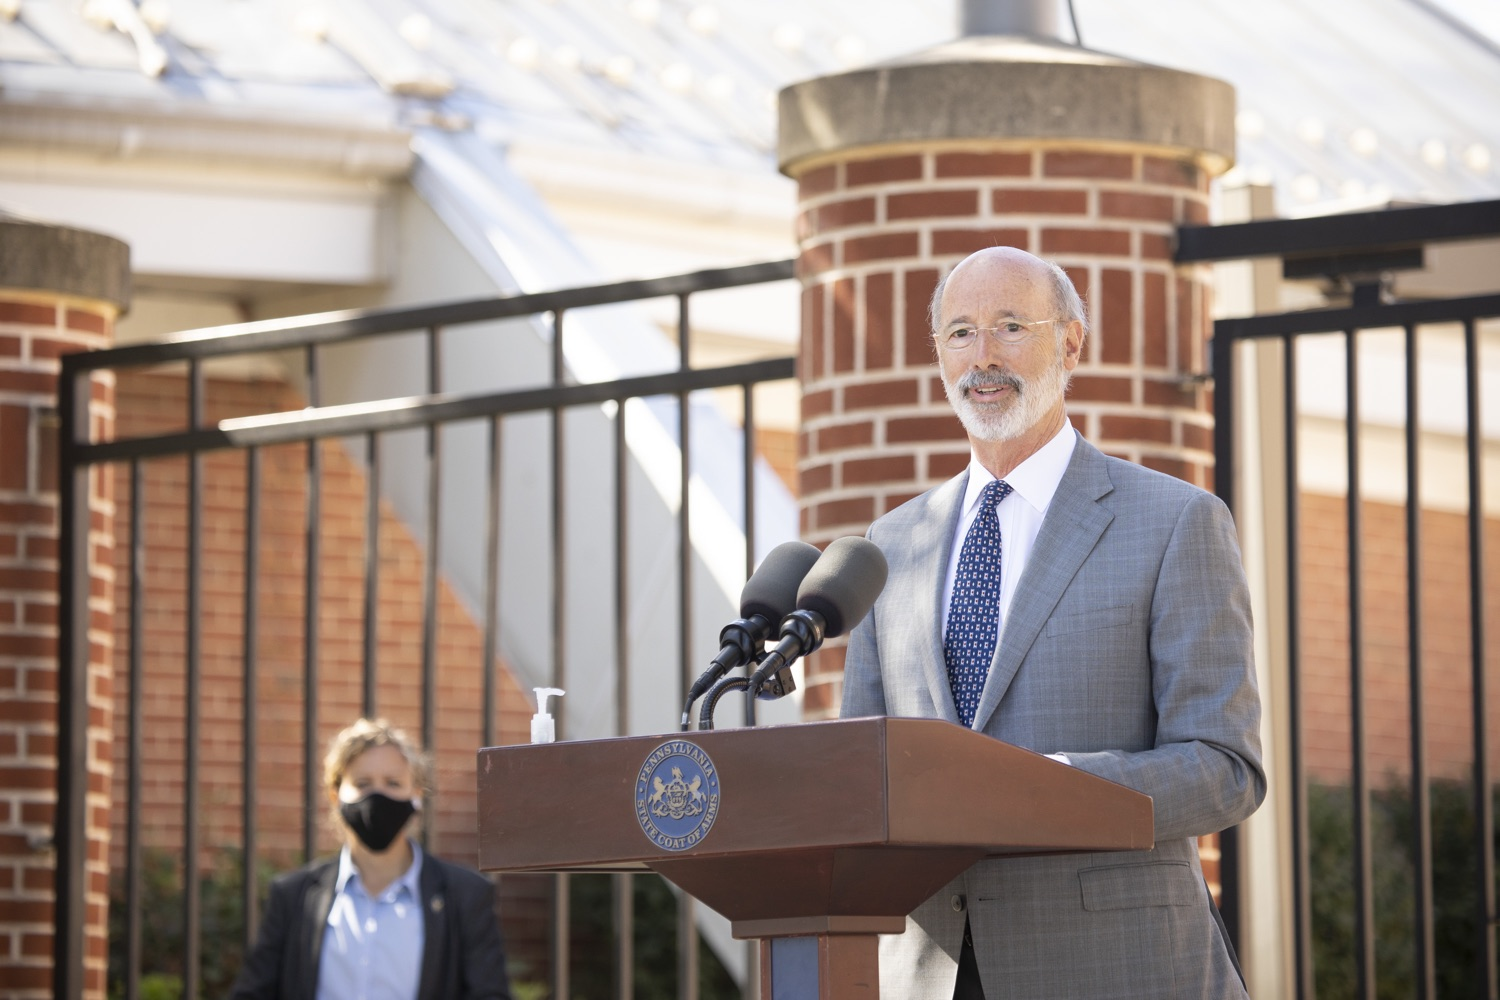 "<a href=""https://filesource.wostreaming.net/commonwealthofpa/photo/18306_gov_aca_dz_003.jpg"" target=""_blank"">⇣ Download Photo<br></a>Pennsylvania Governor Tom Wolf speaking with the press.  Governor Tom Wolf today amplified his call to protect the ACA and provide health care for all amid threats as the US Senate Judiciary Committee hearings to confirm conservative Judge Amy Coney Barrett to the Supreme Court begin next week and the pandemic ramps up across the country. York, PA  October 8, 2020"